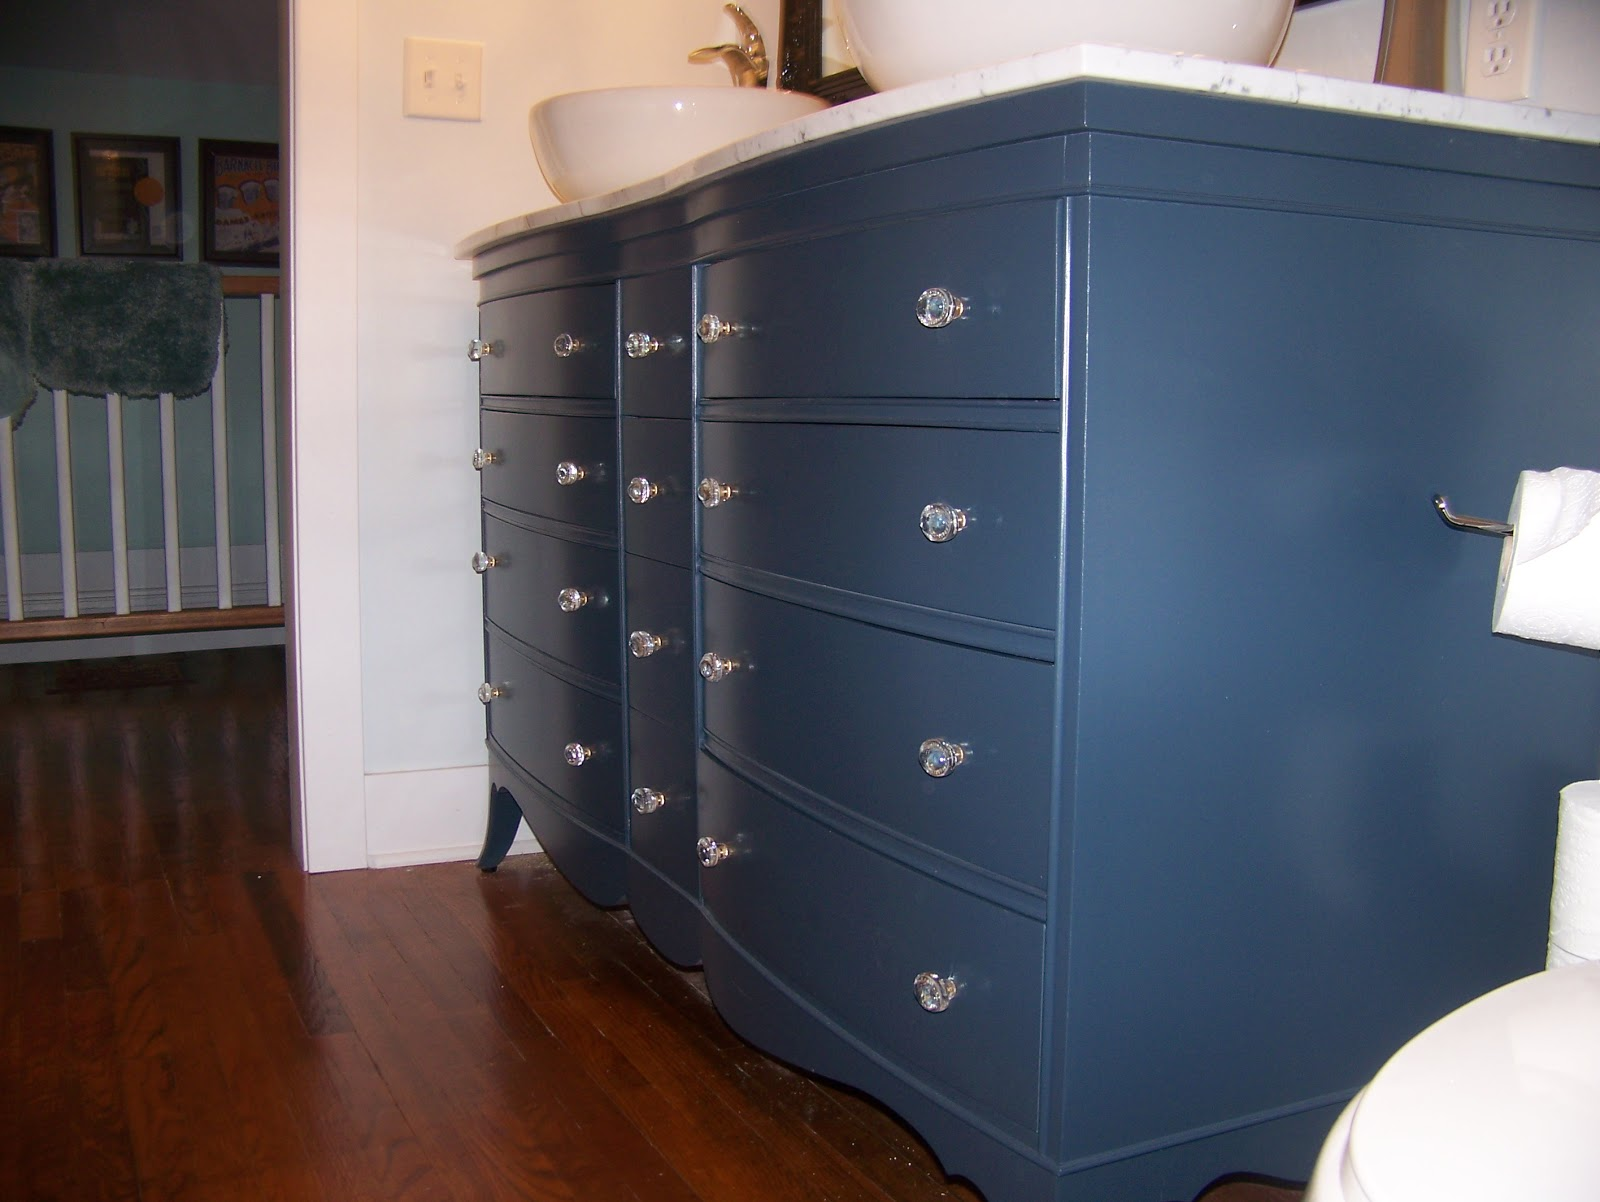 Bathroom Vanities Grand Rapids Mi julie peterson - simple redesign: turning a dresser into a